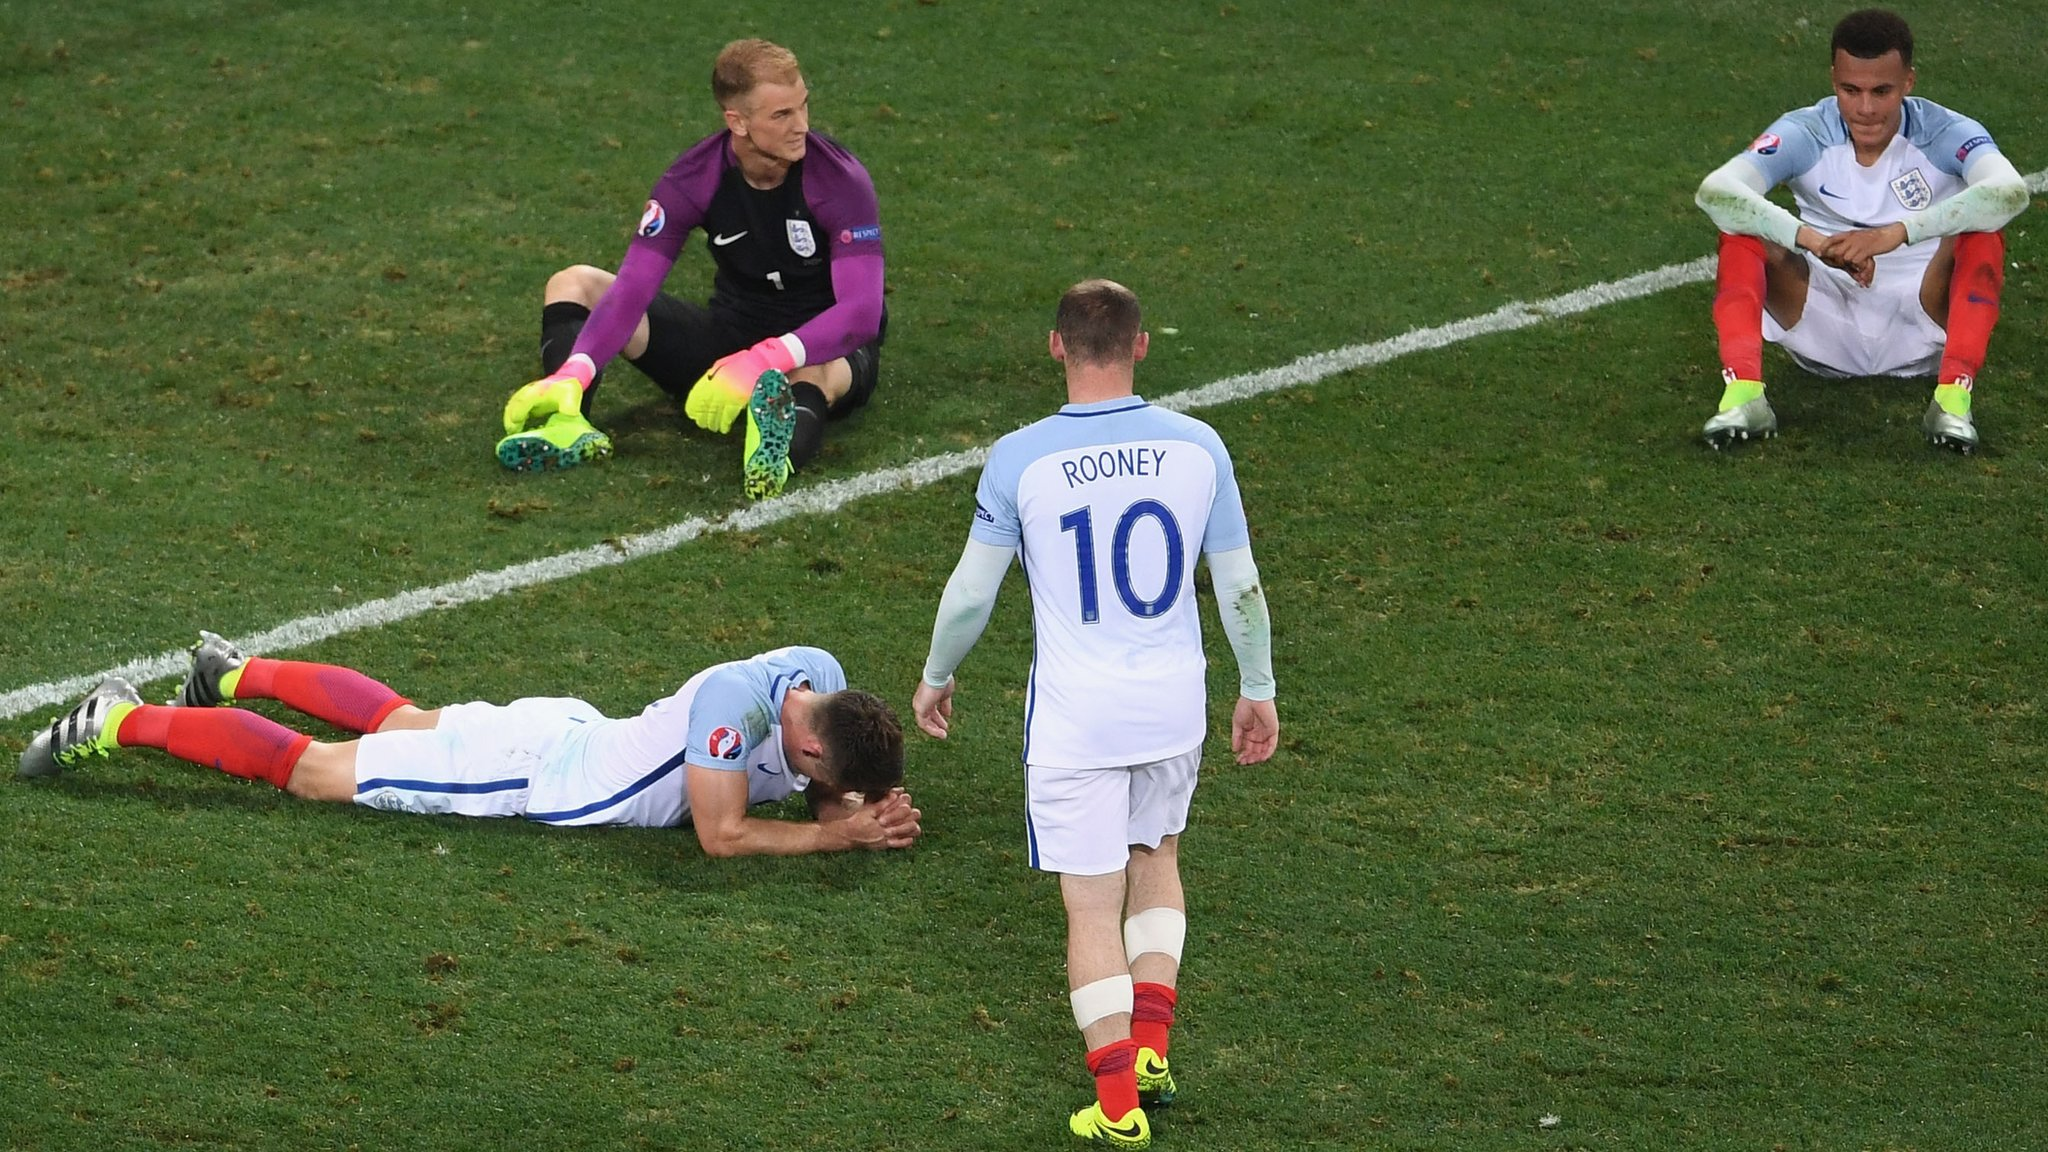 https://i1.wp.com/c.files.bbci.co.uk/1773F/production/_90136069_england_players_dejected_getty.jpg